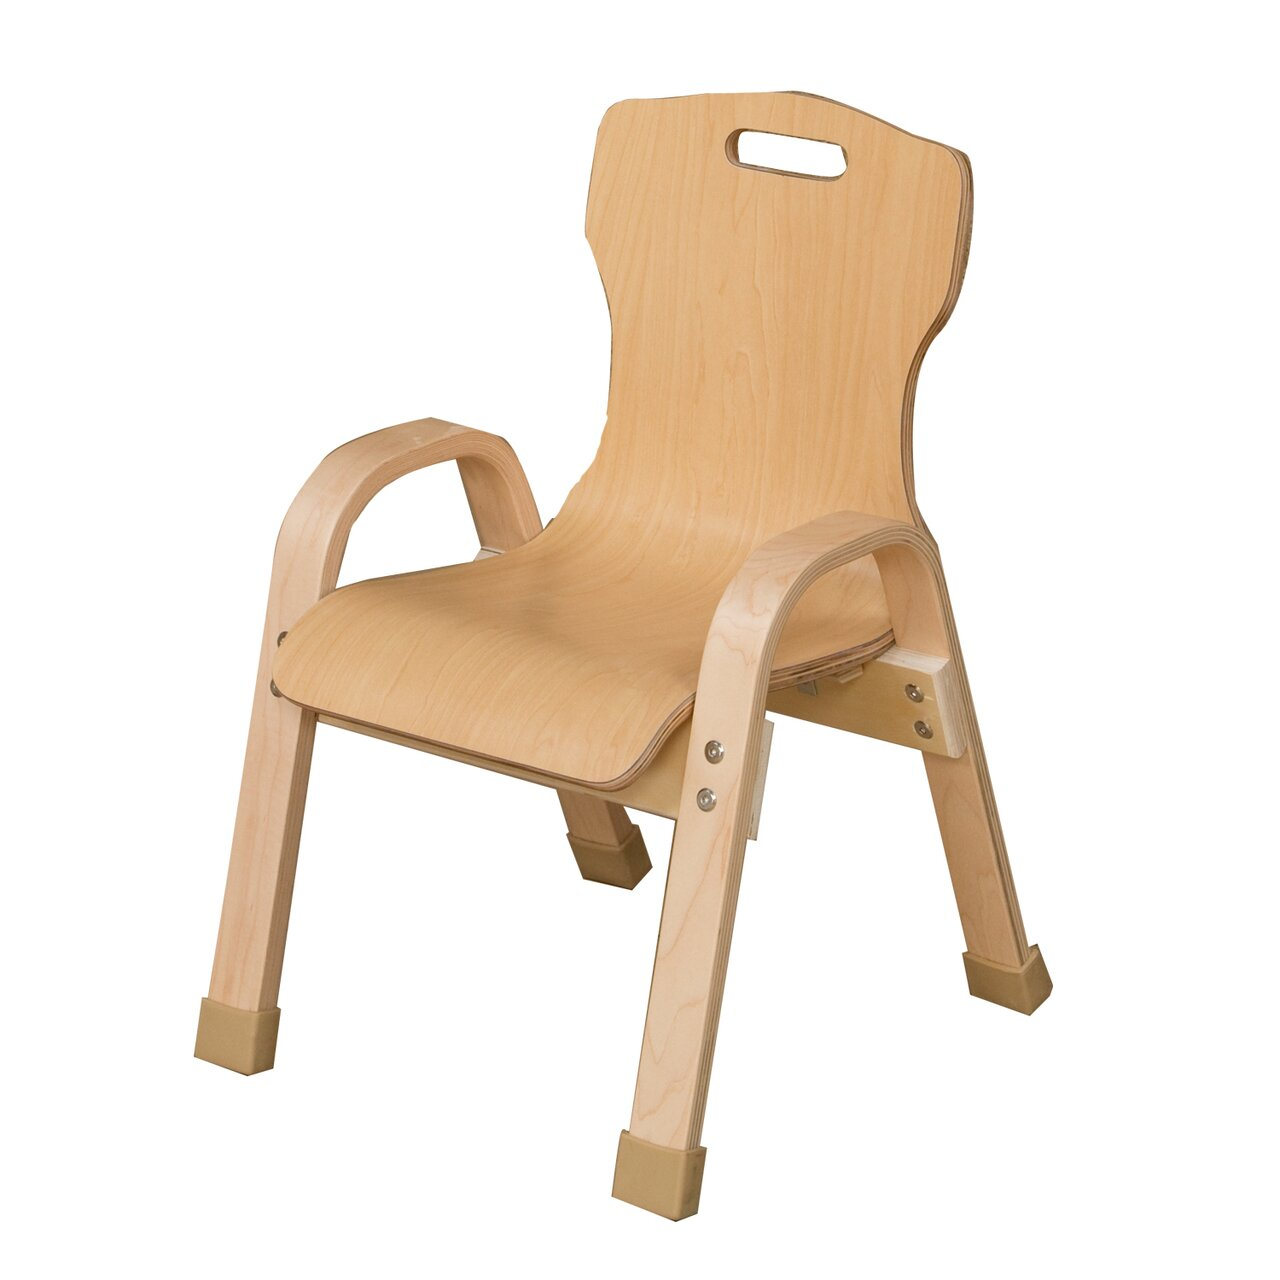 Wood Designs Healthy Kids Wood Classroom Chair Wayfair Supply